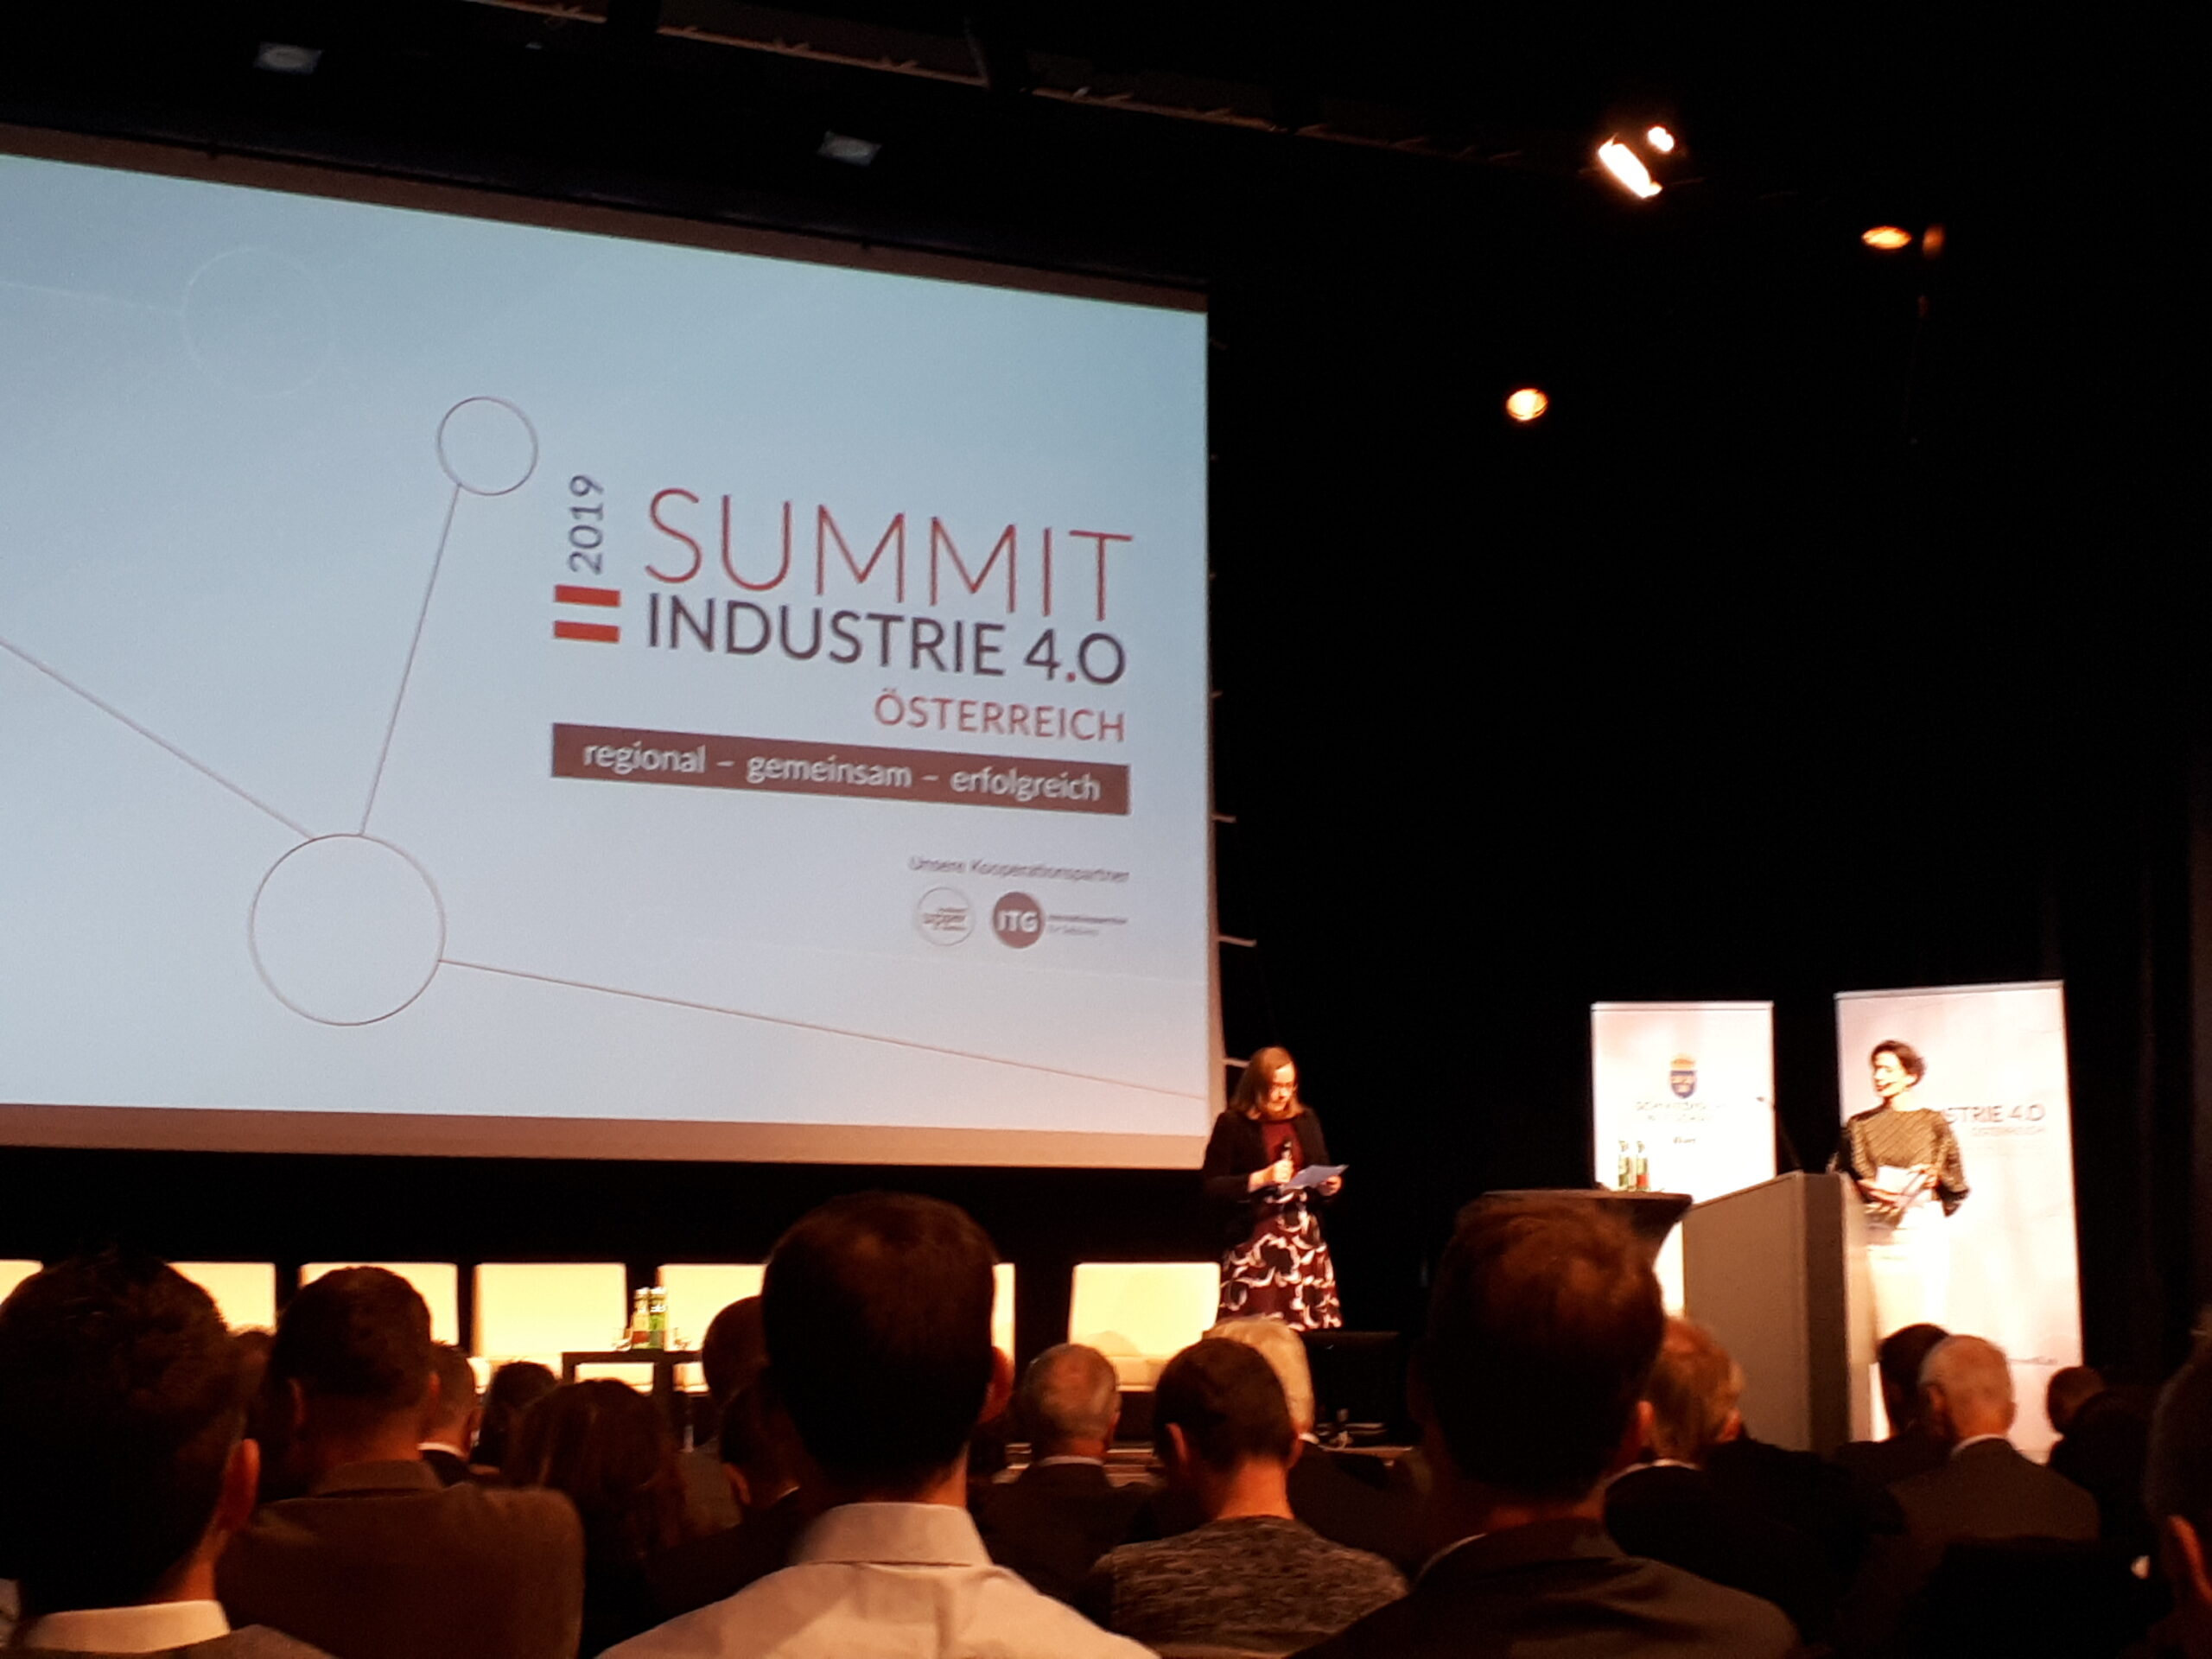 Summit Industrie 4.0